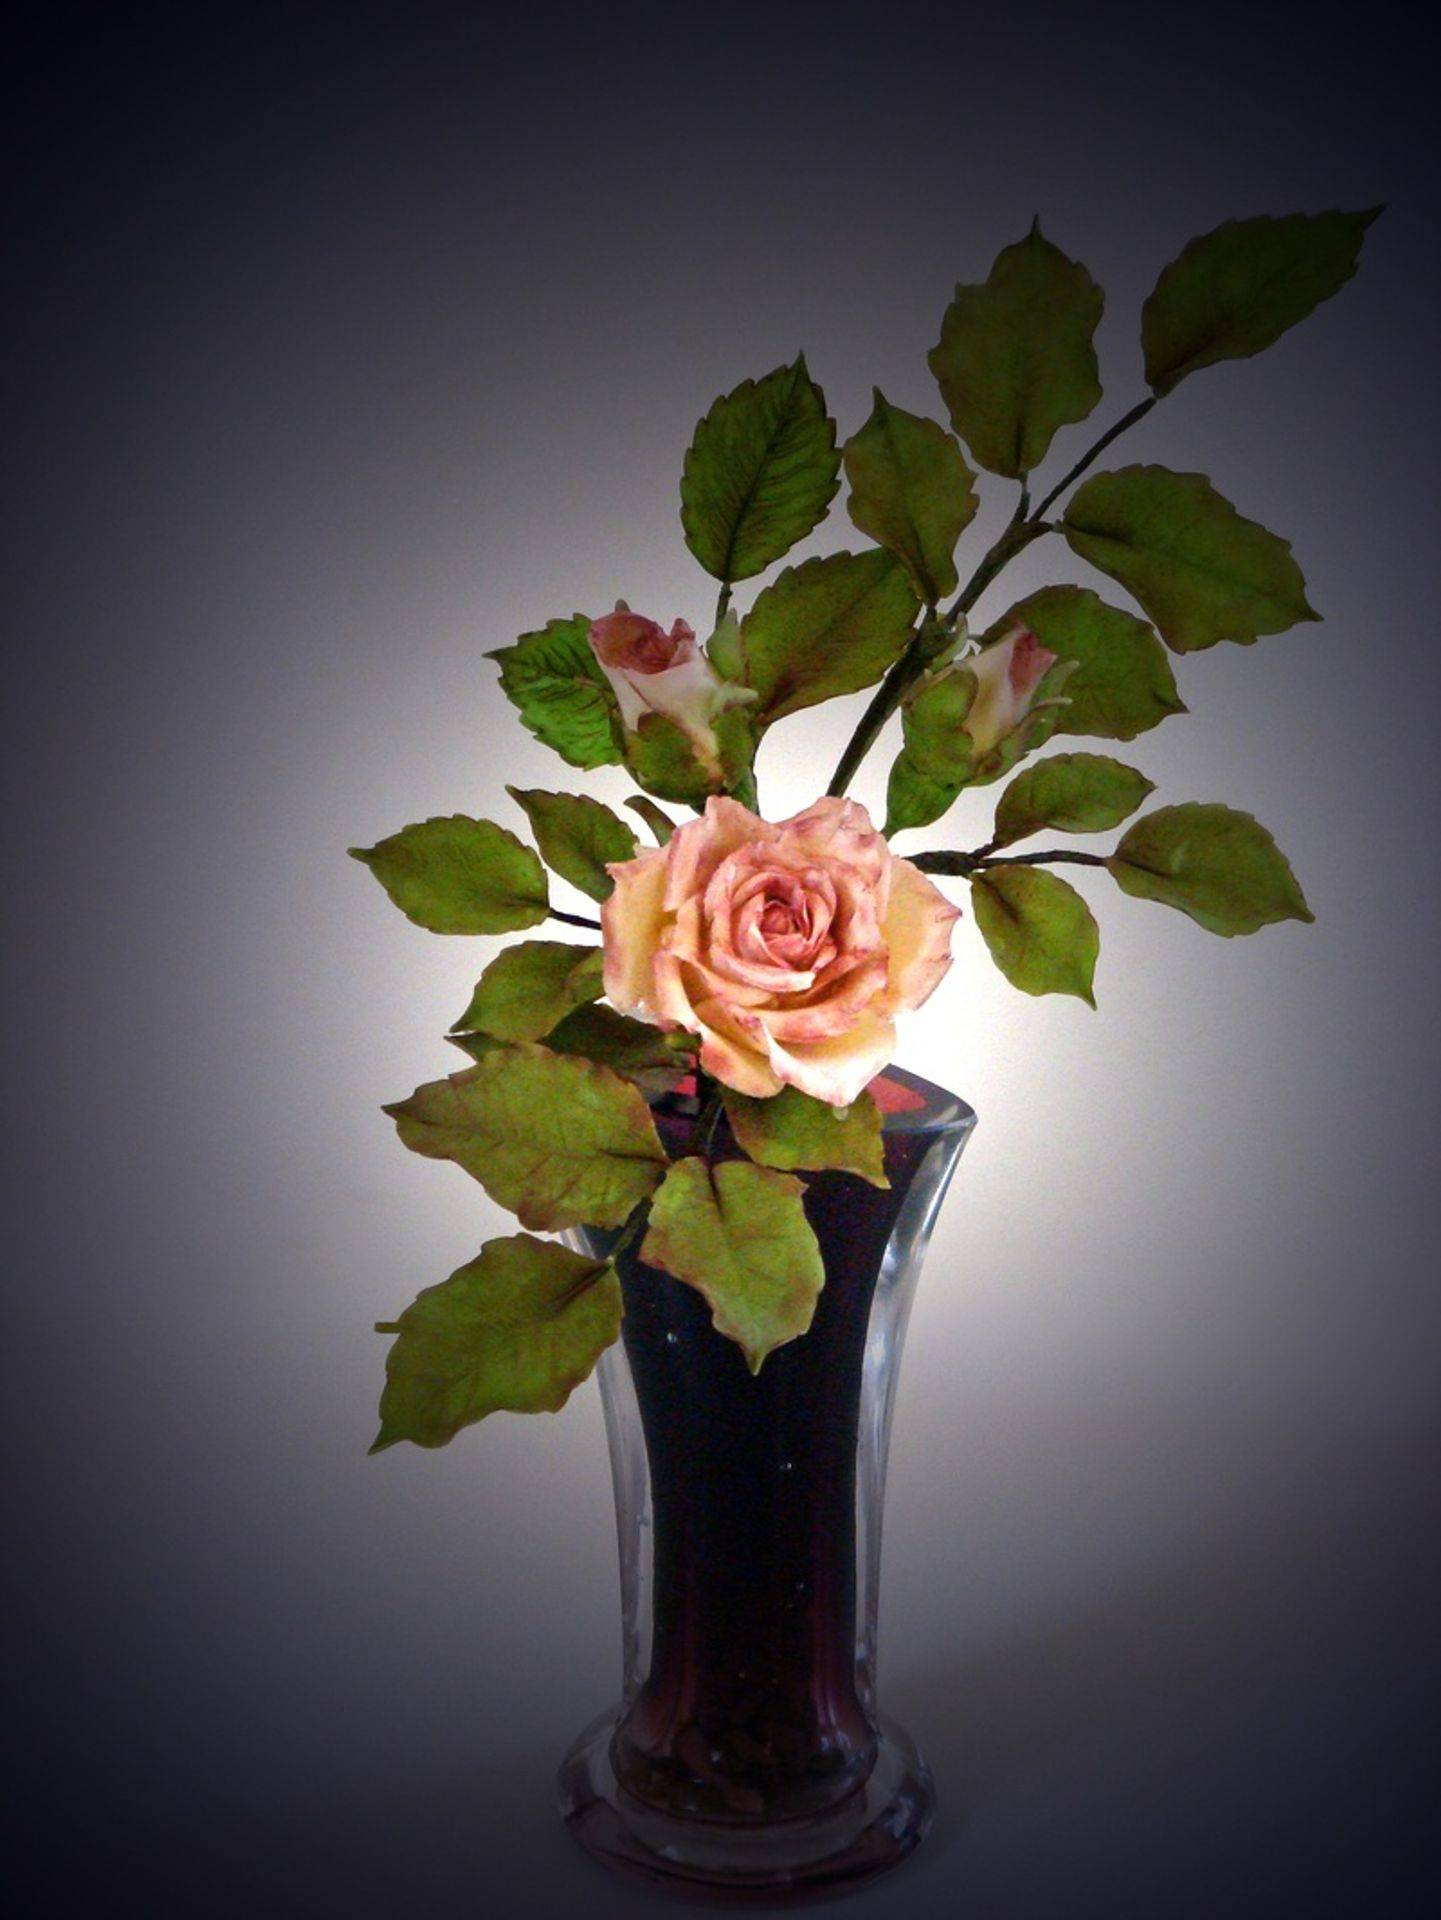 Cold Porcelain Rose